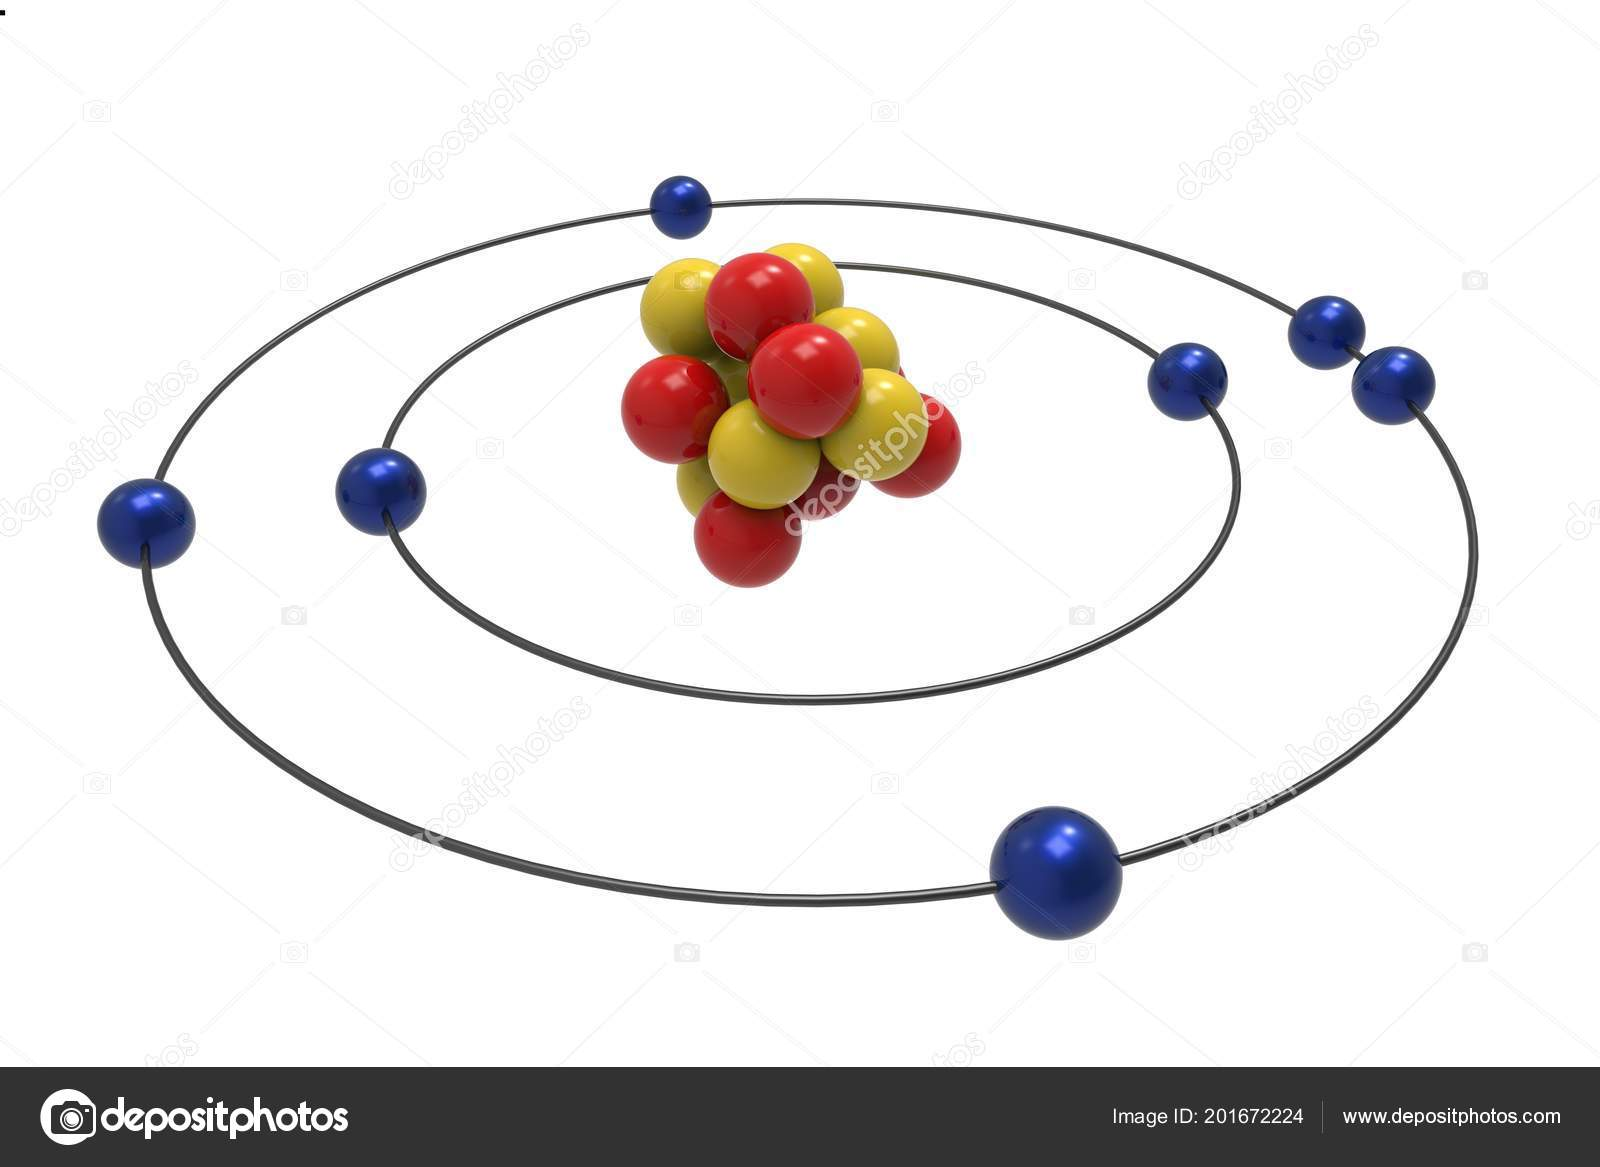 Bohr model nitrogen atom proton neutron electron science chemical bohr model nitrogen atom proton neutron electron science chemical concept fotografia de stock ccuart Image collections